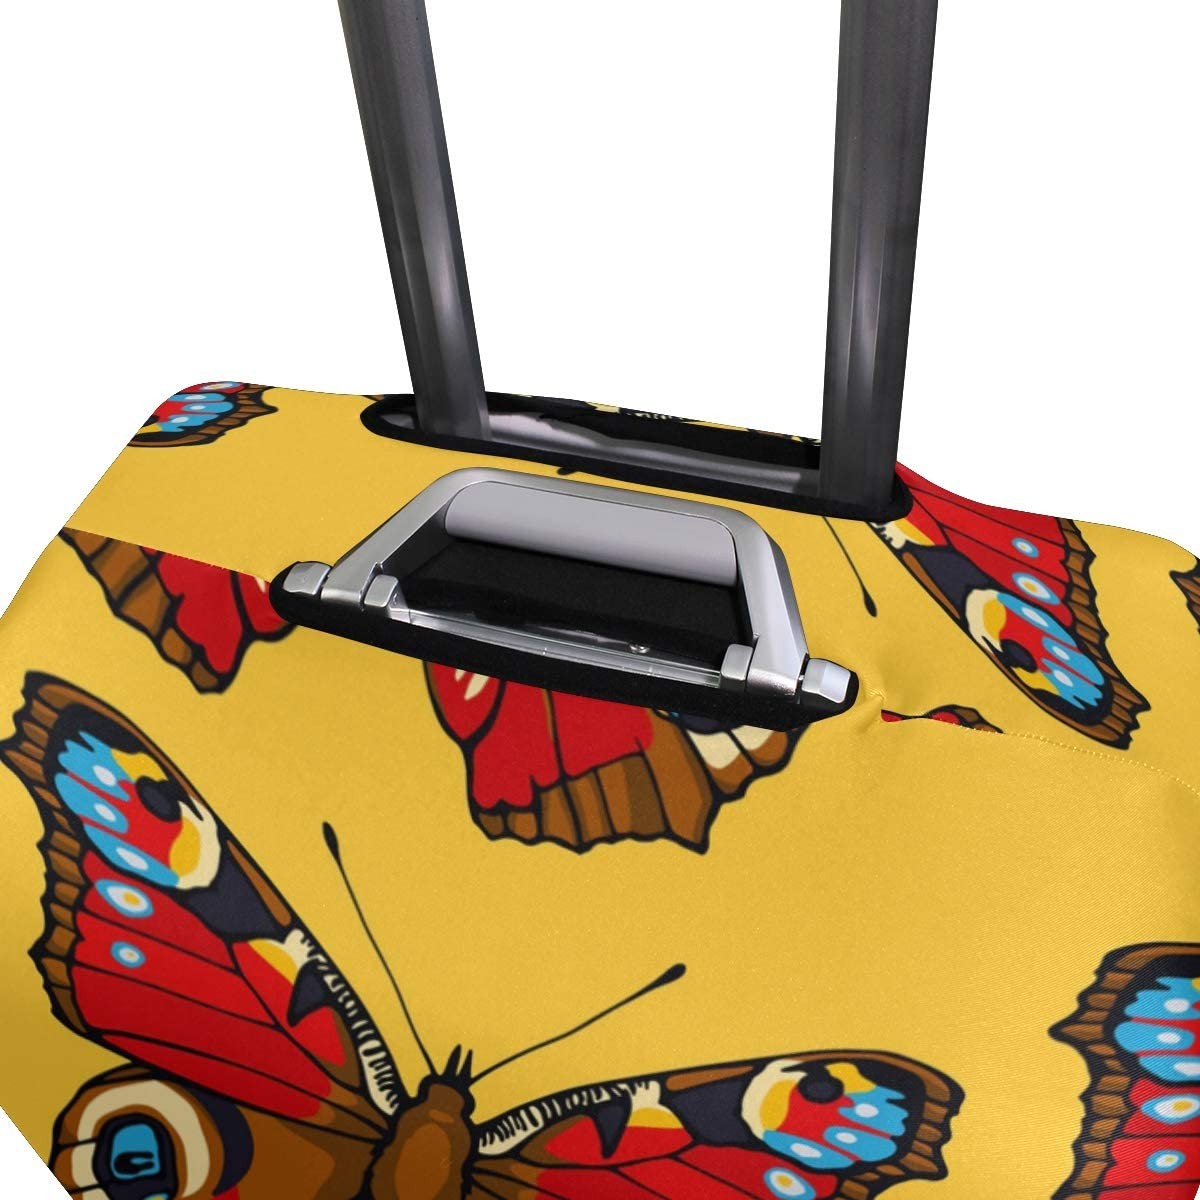 GIOVANIOR Peacock Butterflies Luggage Cover Suitcase Protector Carry On Covers